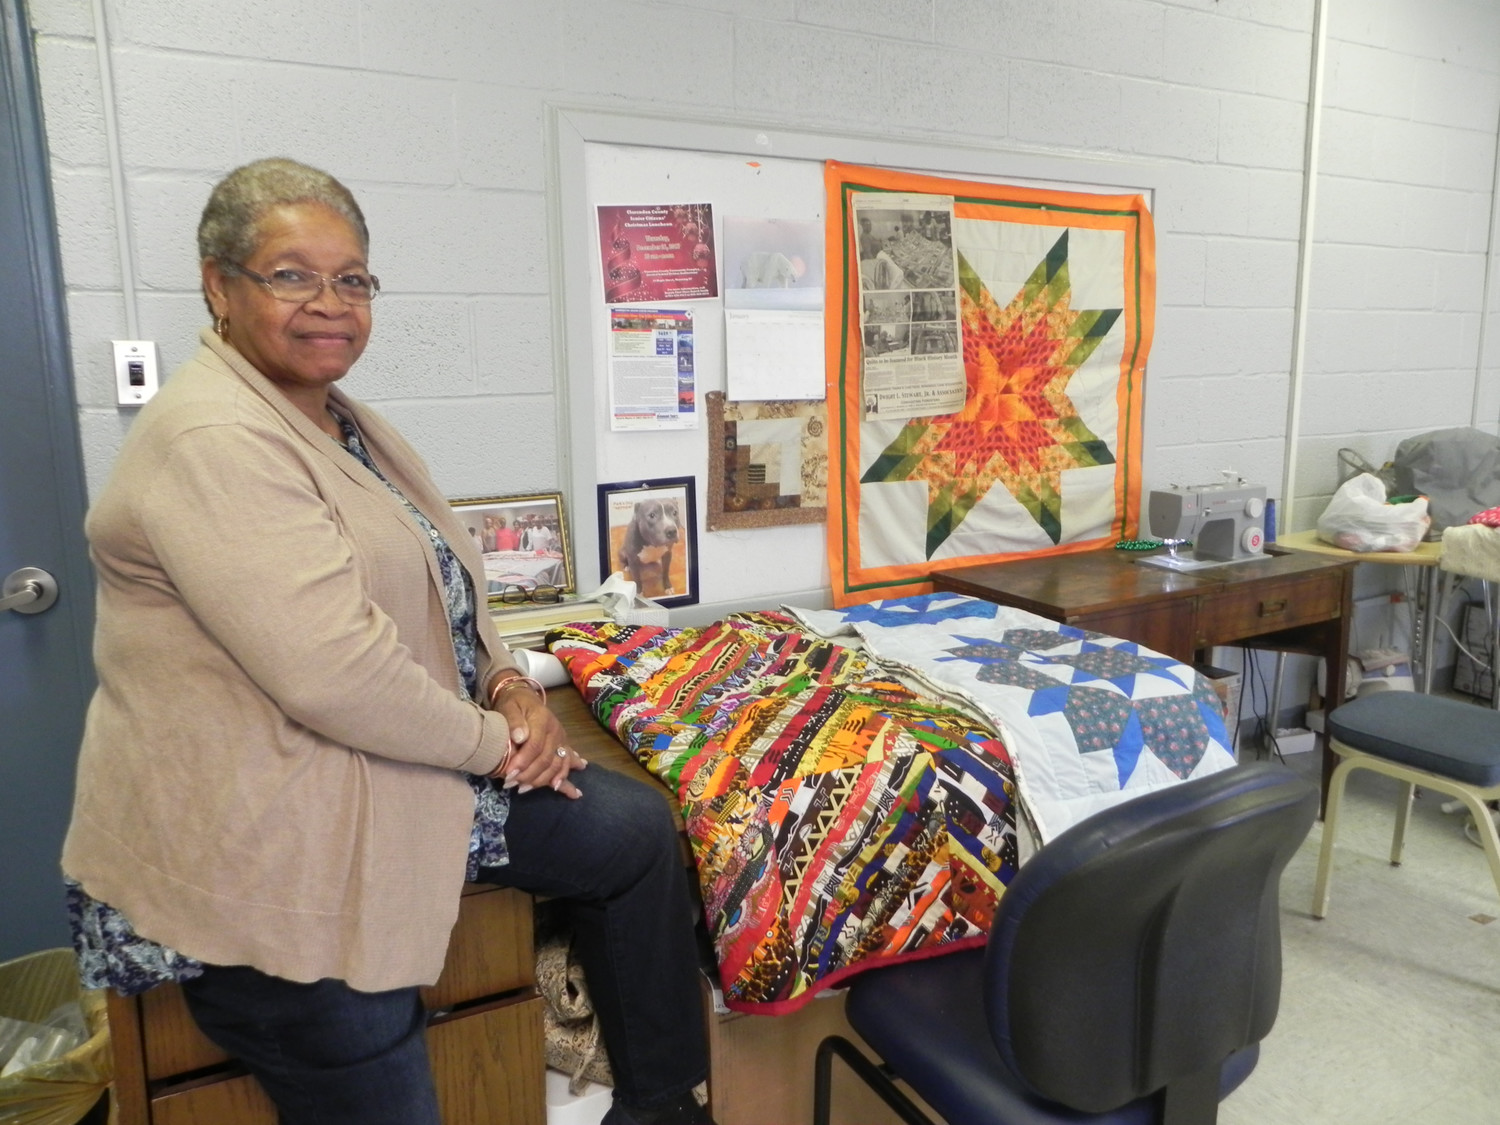 Geneva Bell, from the Summerton Senior Quilters, proudly displays a few of the quilts her group made for the show she helped coordinate at the Lake Marion Artisans Art Gallery.